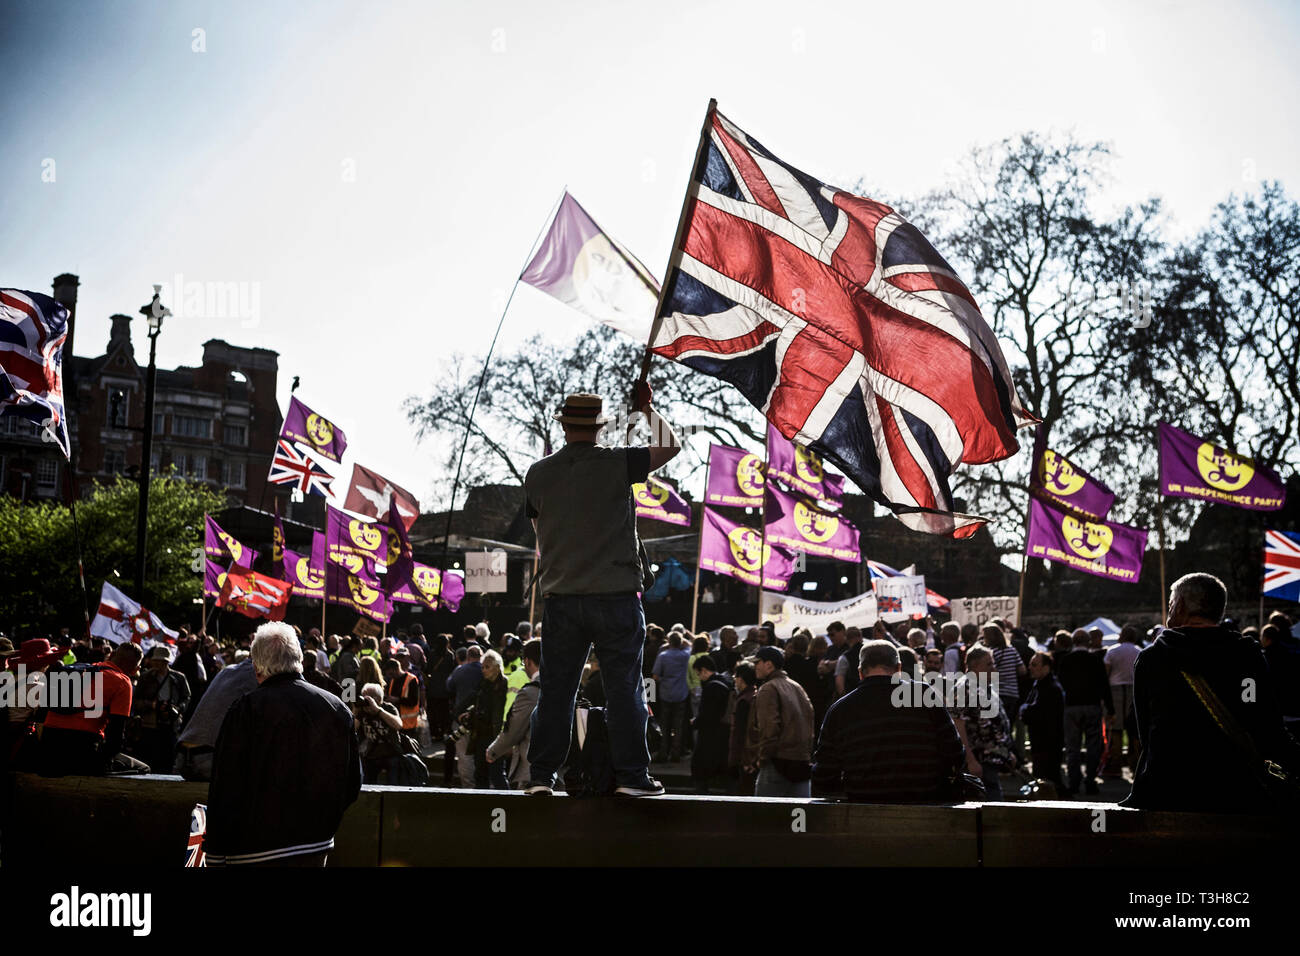 Political rally uk / politics uk / political protest - protester holding a flag on a peaceful march pro Brexit rally on 29 March, Brexit day 2019 - Stock Image